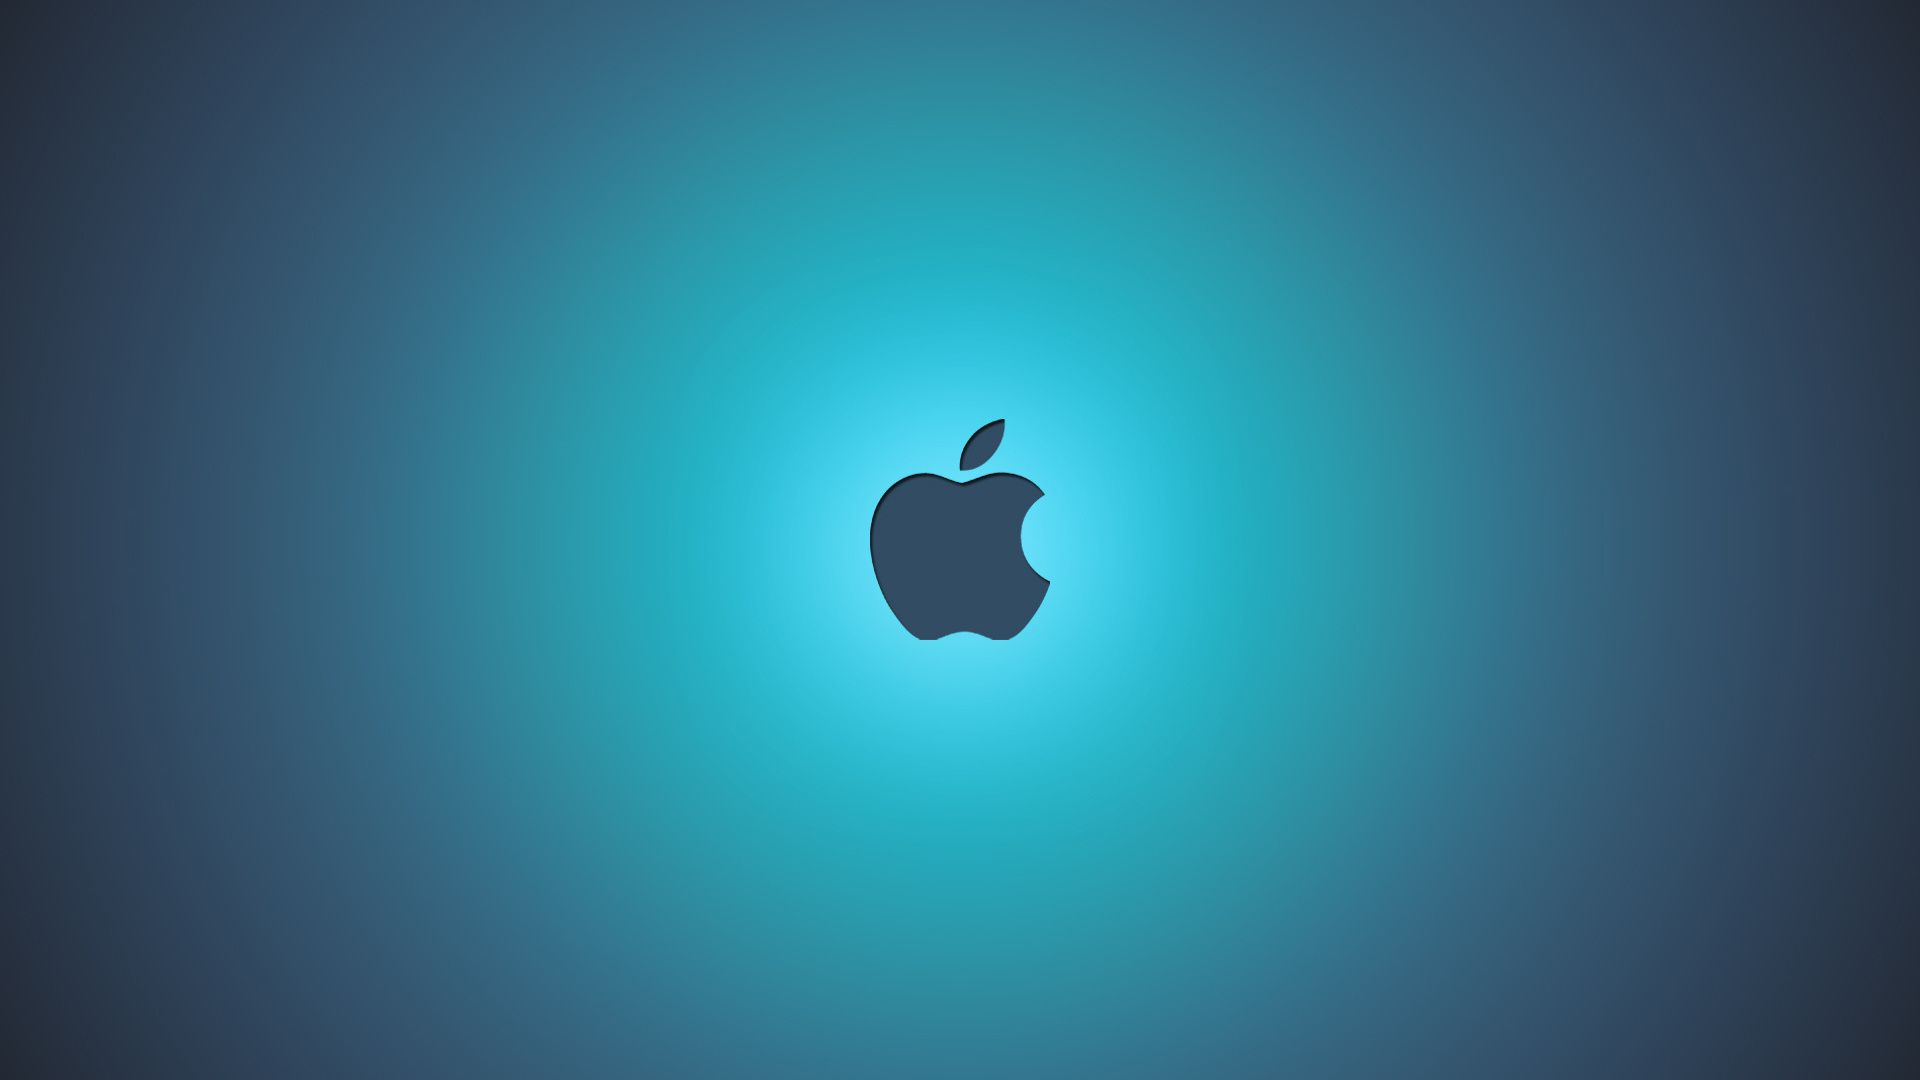 Apple Blue Background Wallpaper Desktop 6250 Wallpaper